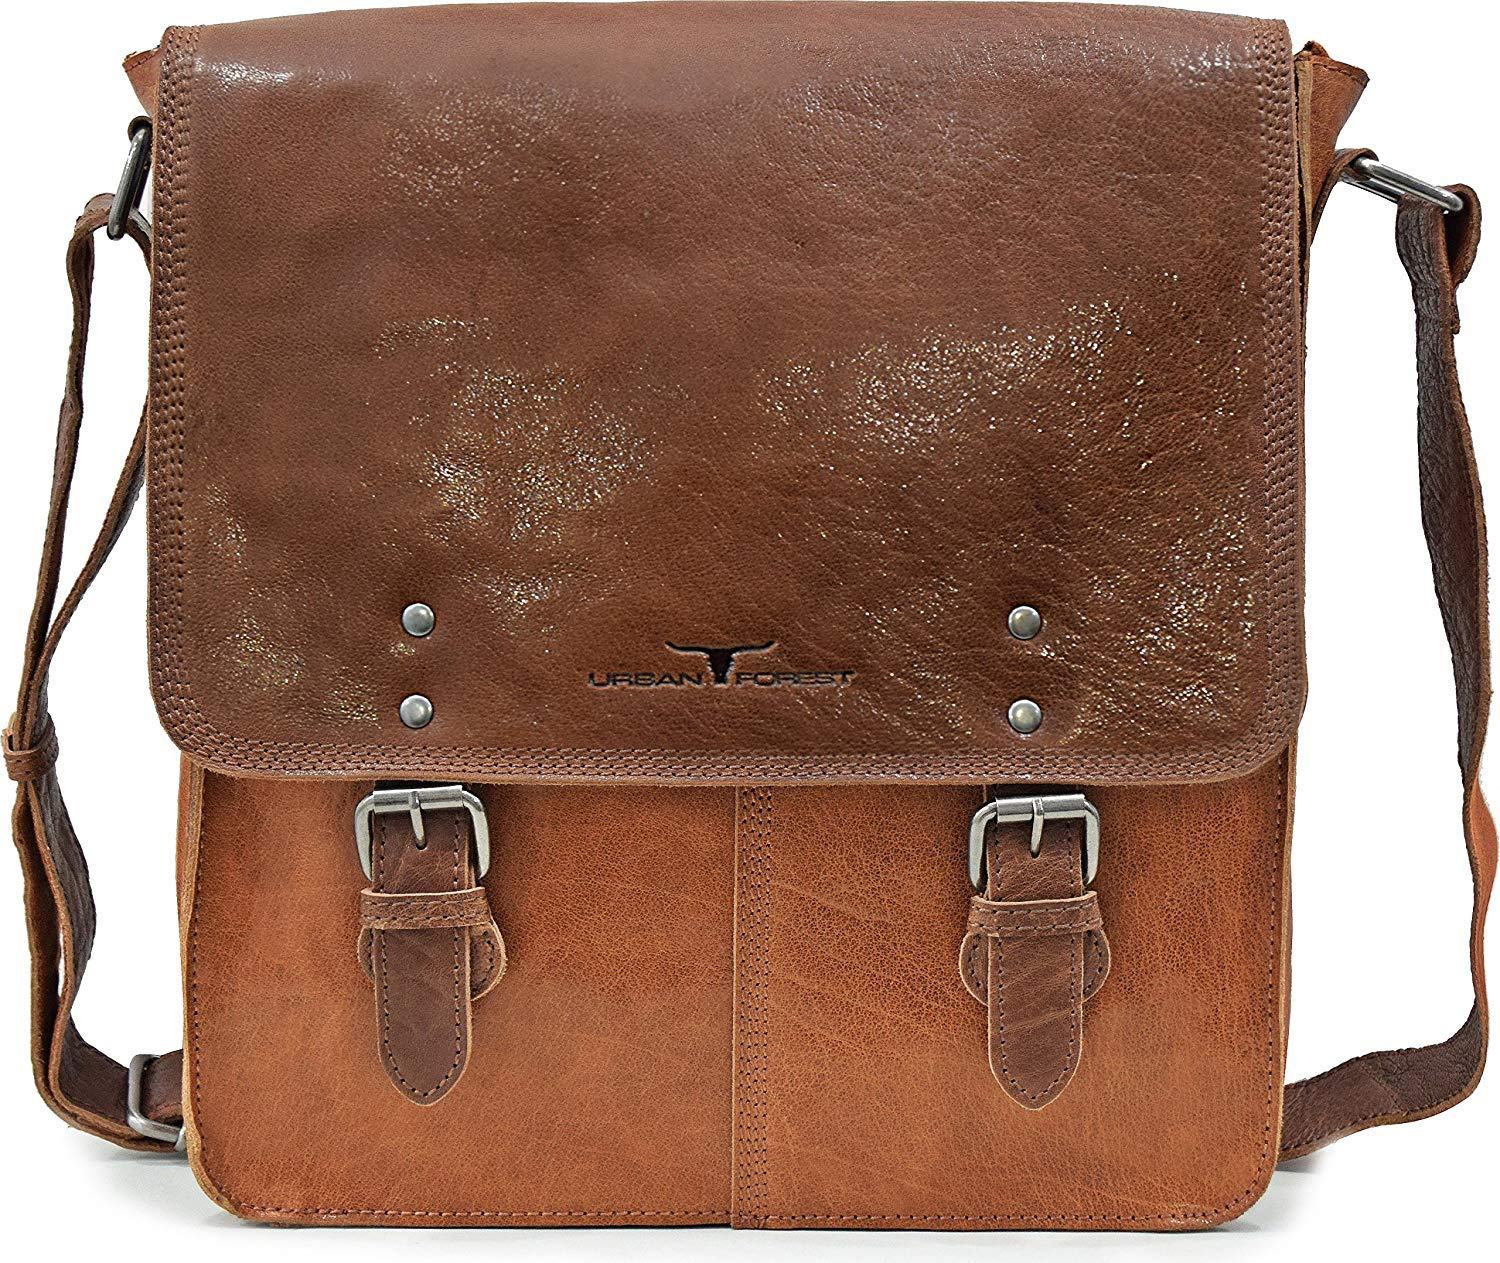 Messenger bag by Dolphin Leathers